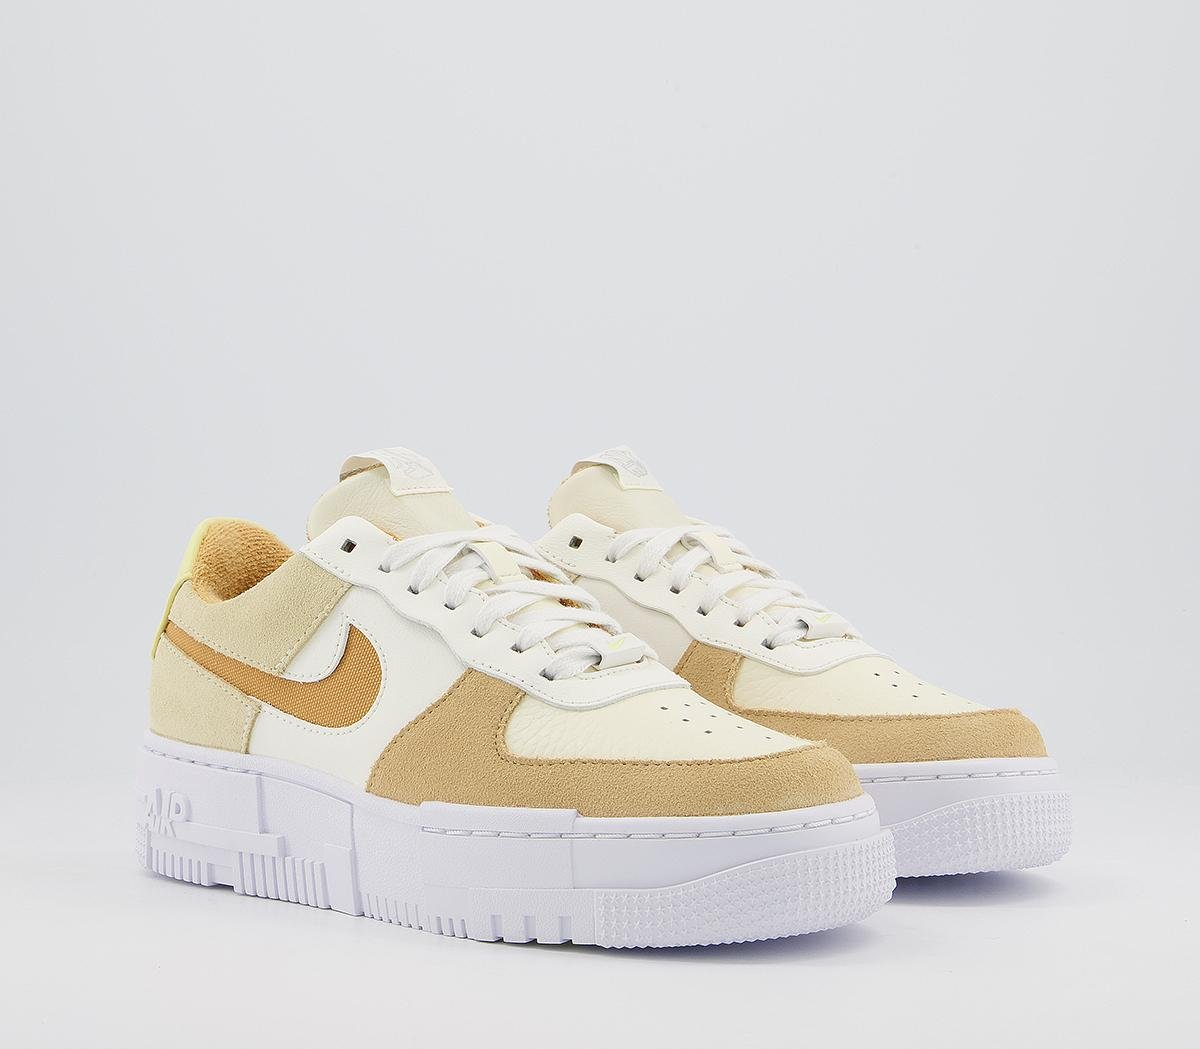 Ad: Last sizes of the new Nike Air Force 1 Pixel 'Coconut Milk':